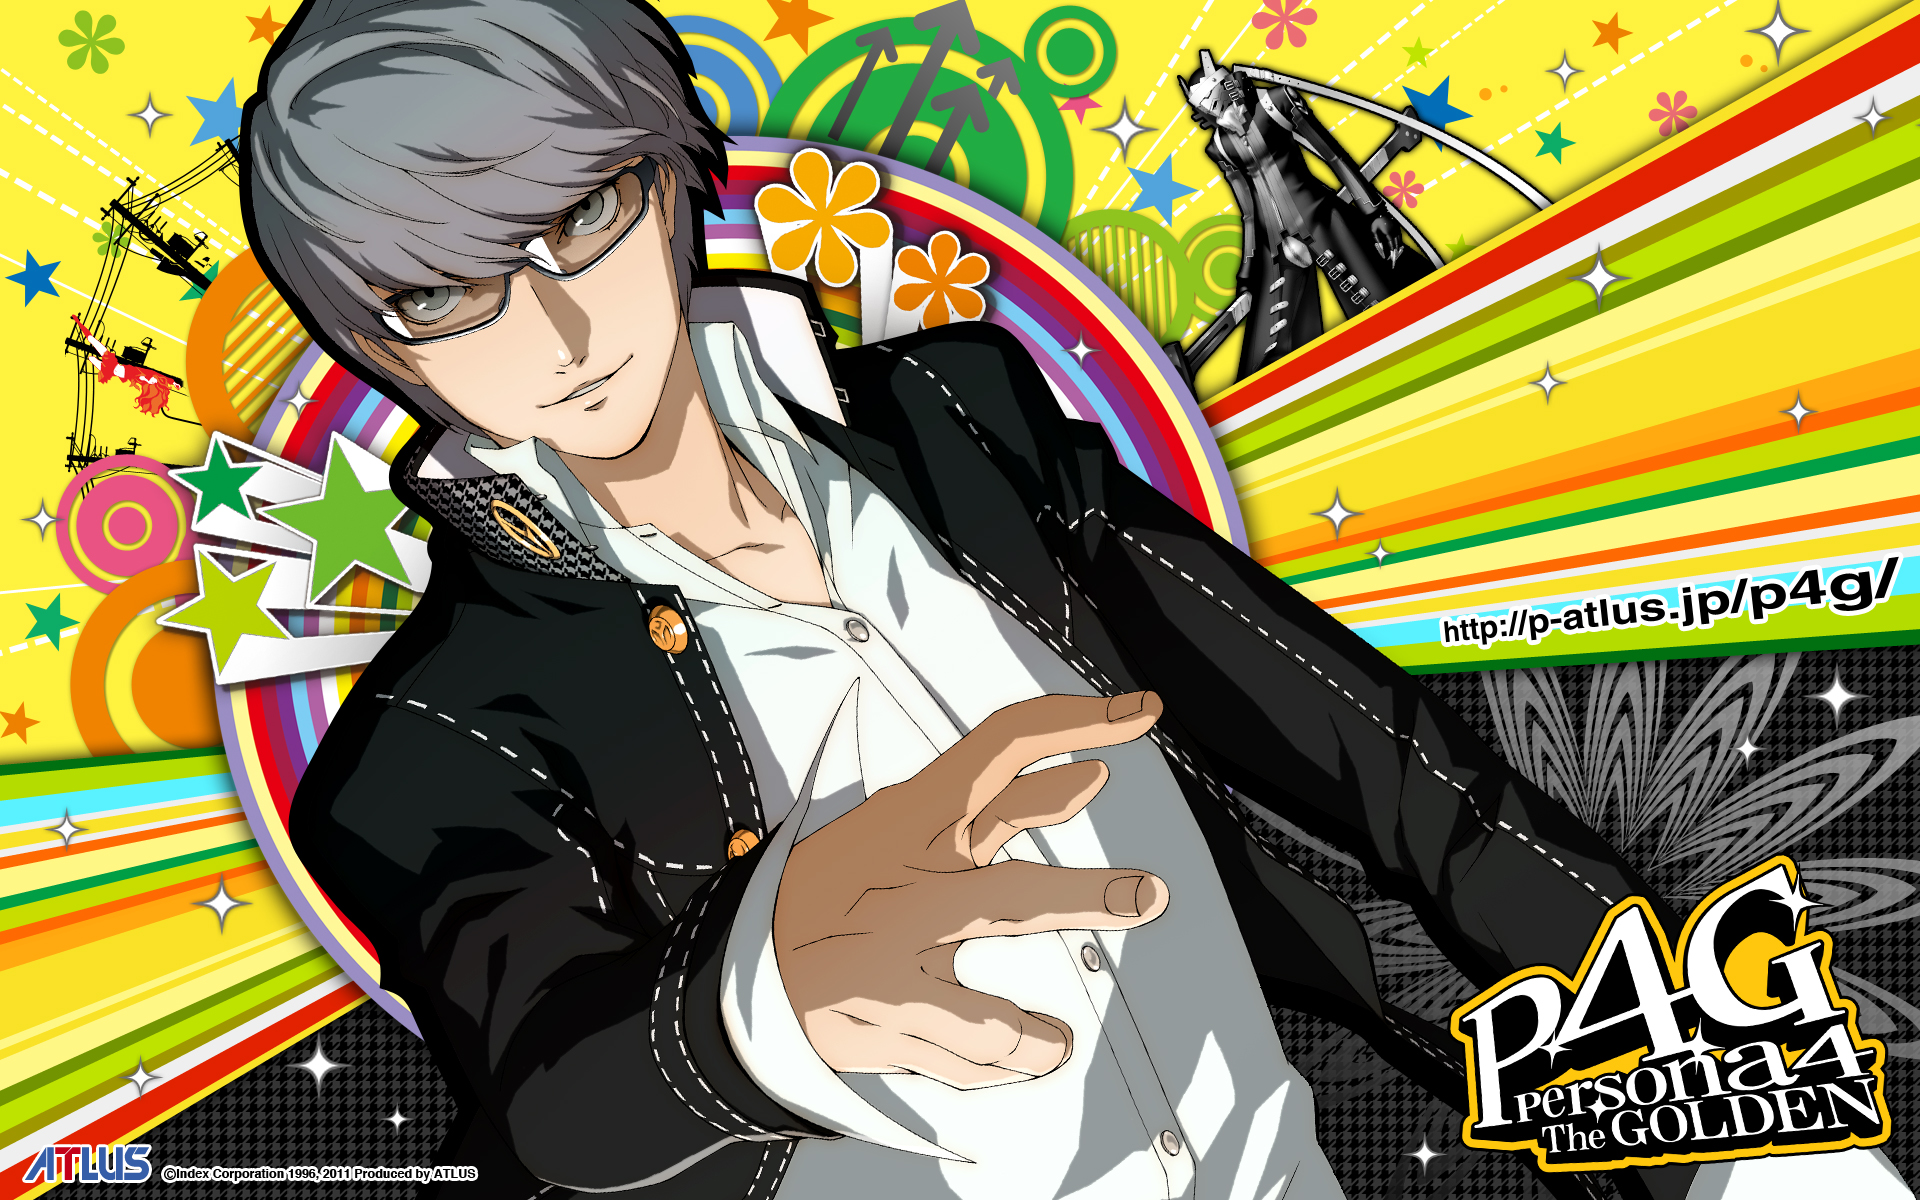 Persona 4 Psp Persona 4 The Golden Shin